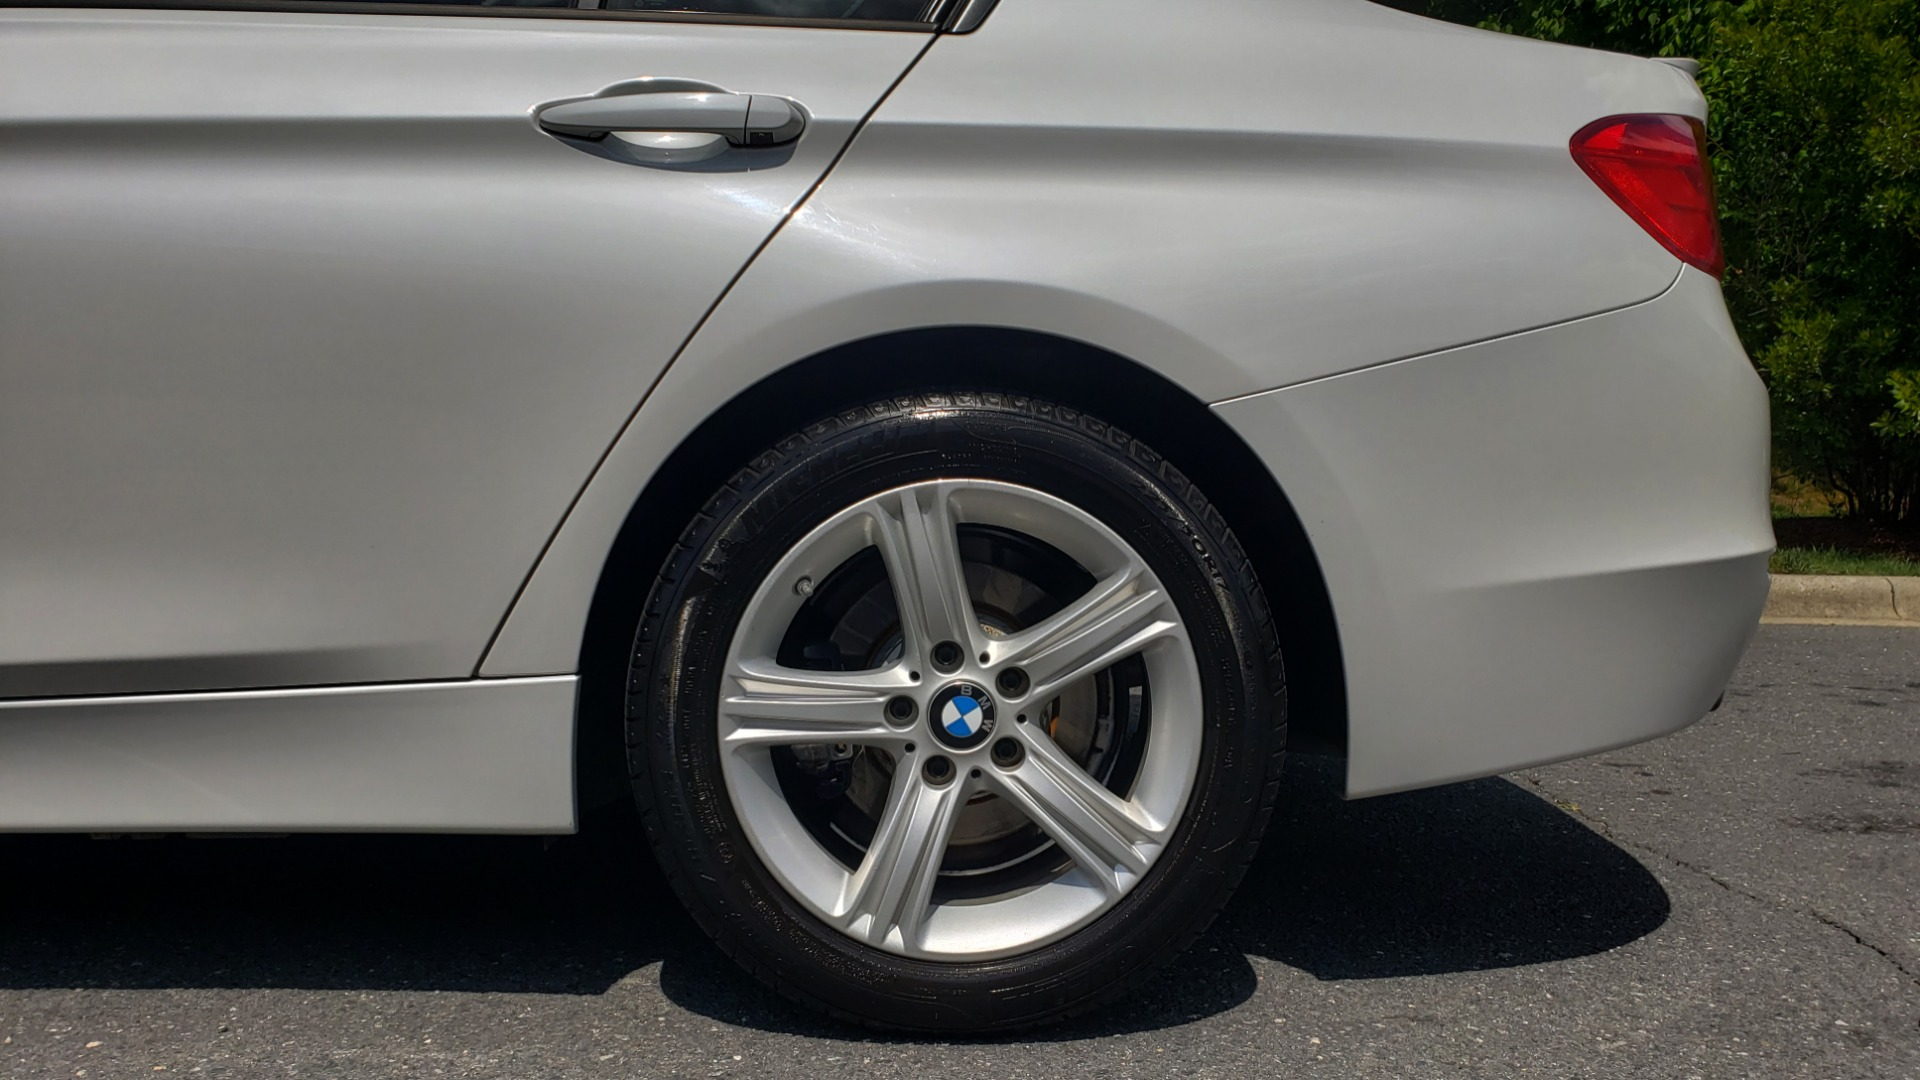 Used 2015 BMW 3 SERIES 328I PREMIUM / NAV / SUNROOF / HTD STS / DRIVER ASST / REARVIEW for sale Sold at Formula Imports in Charlotte NC 28227 79